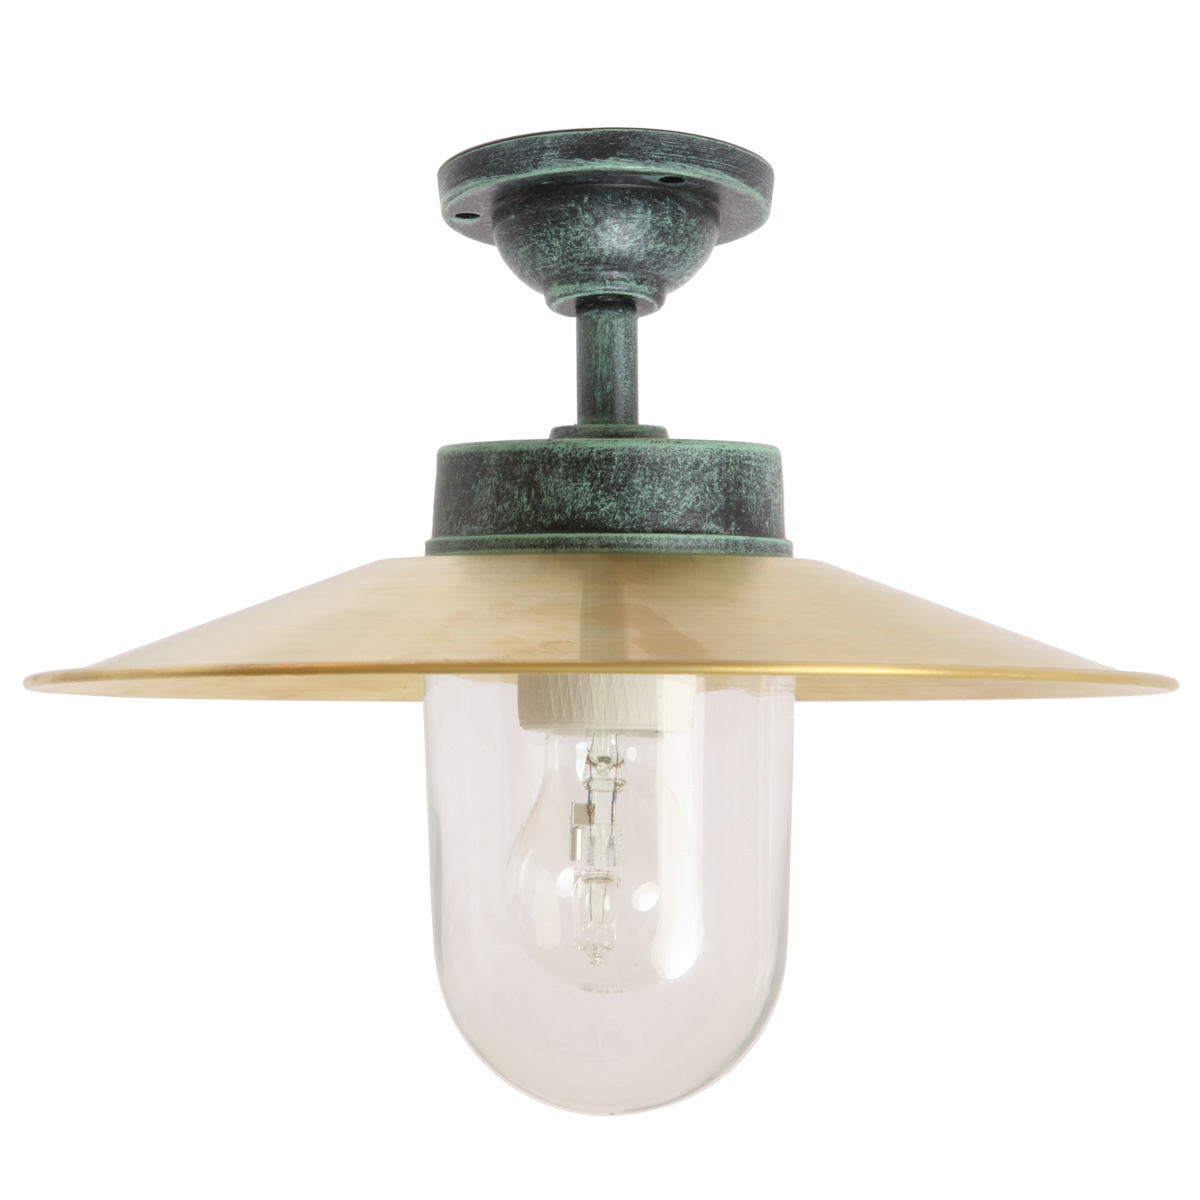 Clical Ceiling Barn Lamp 38 Cl Br With Shade